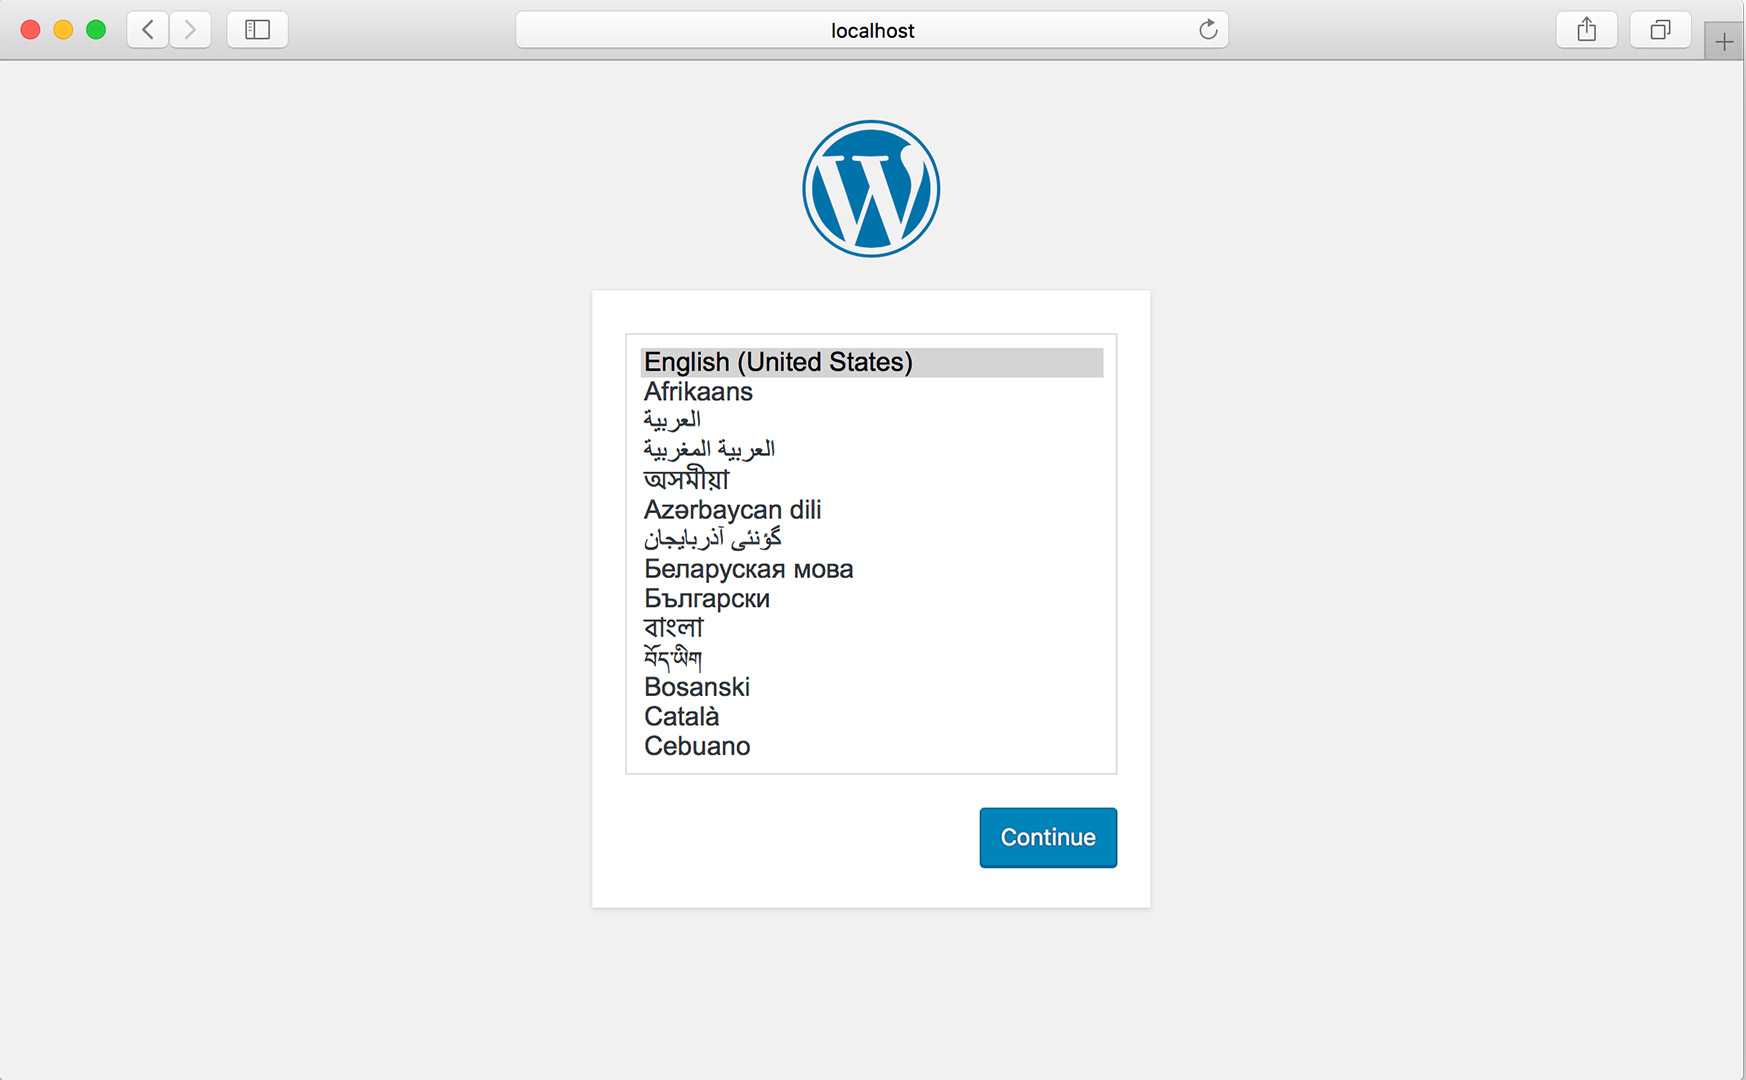 Wordpress 4.9.5 Initial Setup Scfreen Screen